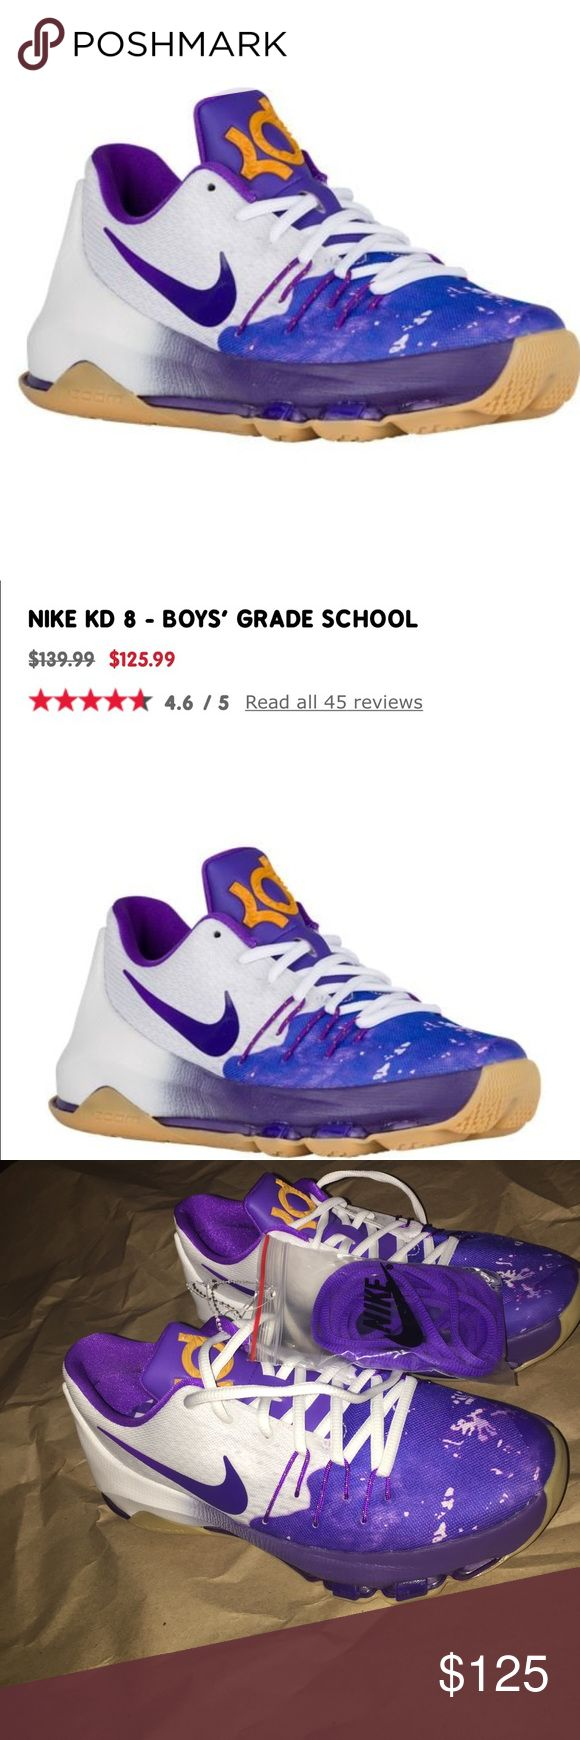 NEW rare Nike Purple and white sneaker kD youth Price firm ships next day ❤️ unisex rare Nike Kevin Durant KD 8 lakers colors. Youth sz 6.5 fits a women's sz 8, listed acc. Rare Nike kD 6 sneaker brand new. No box no flaws perfect condition includes extra purple laces. Purple blue yellow and white nike sneakers . Paint splatter design with Fly knit design around laces. Super comfy and LOWEST PRICE ONLINE 💕💕Tags: Nike air max kD huaraches Jordan's retro dead stock sneakers Nike air max…